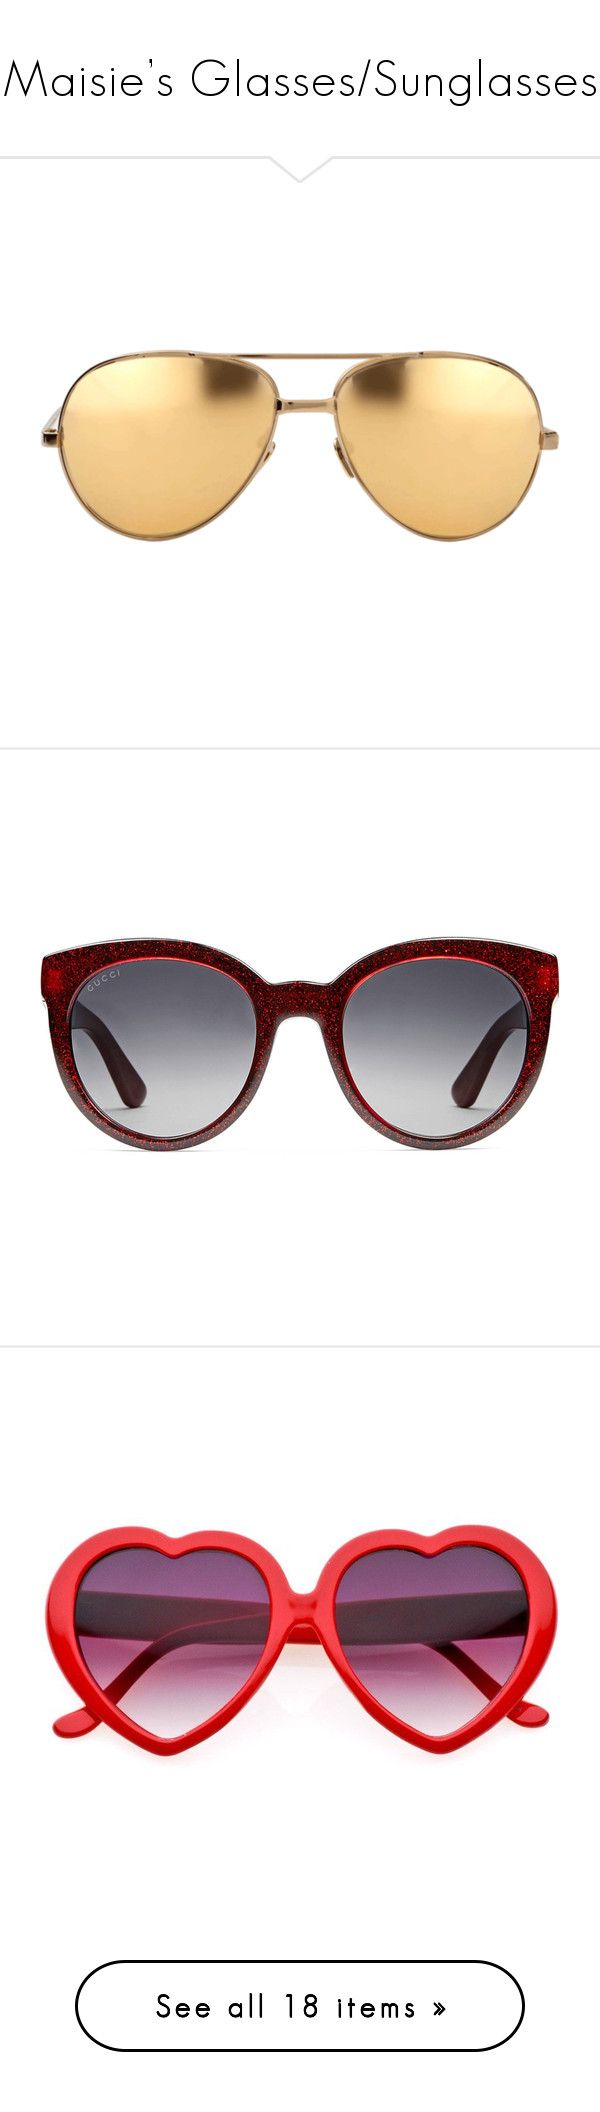 """""""Maisie's Glasses/Sunglasses"""" by skh-siera18 ❤ liked on Polyvore featuring accessories, eyewear, sunglasses, glasses, gold, gold mirrored aviators, gold aviators, gold mirror aviators, aviator mirror sunglasses and gold aviator glasses"""